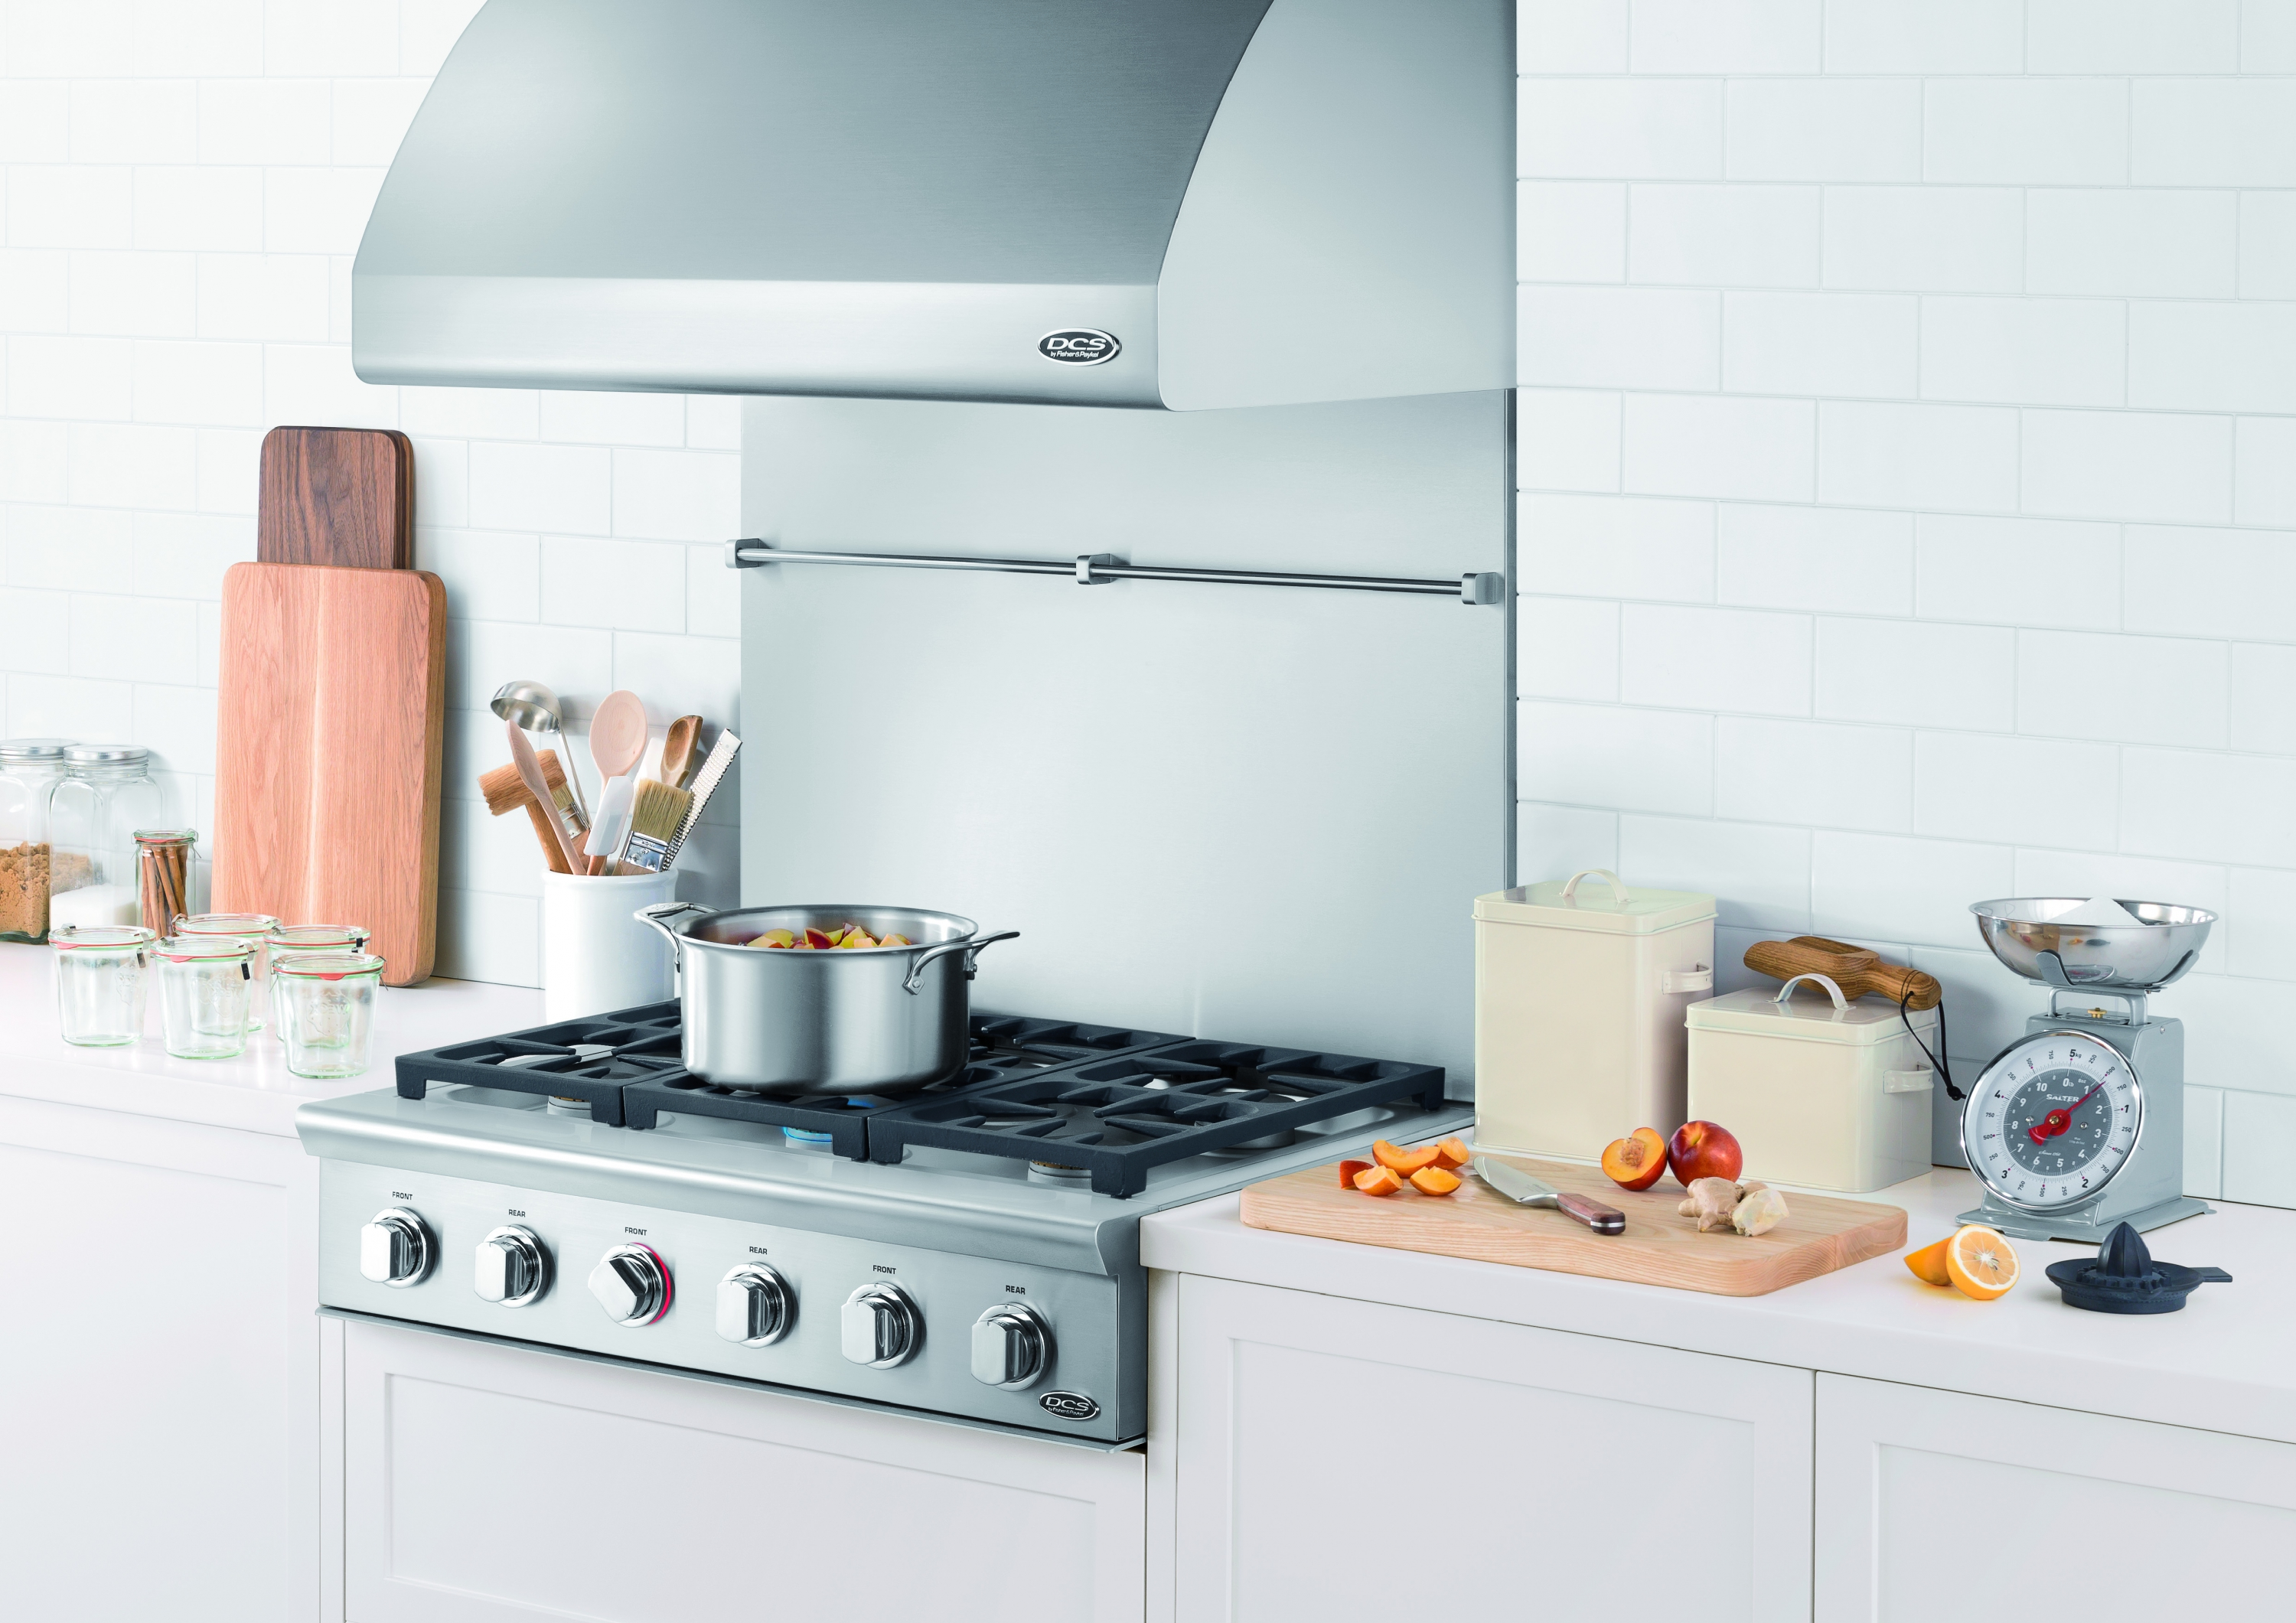 DCS by Fisher  Paykel Launches New Line of Professional